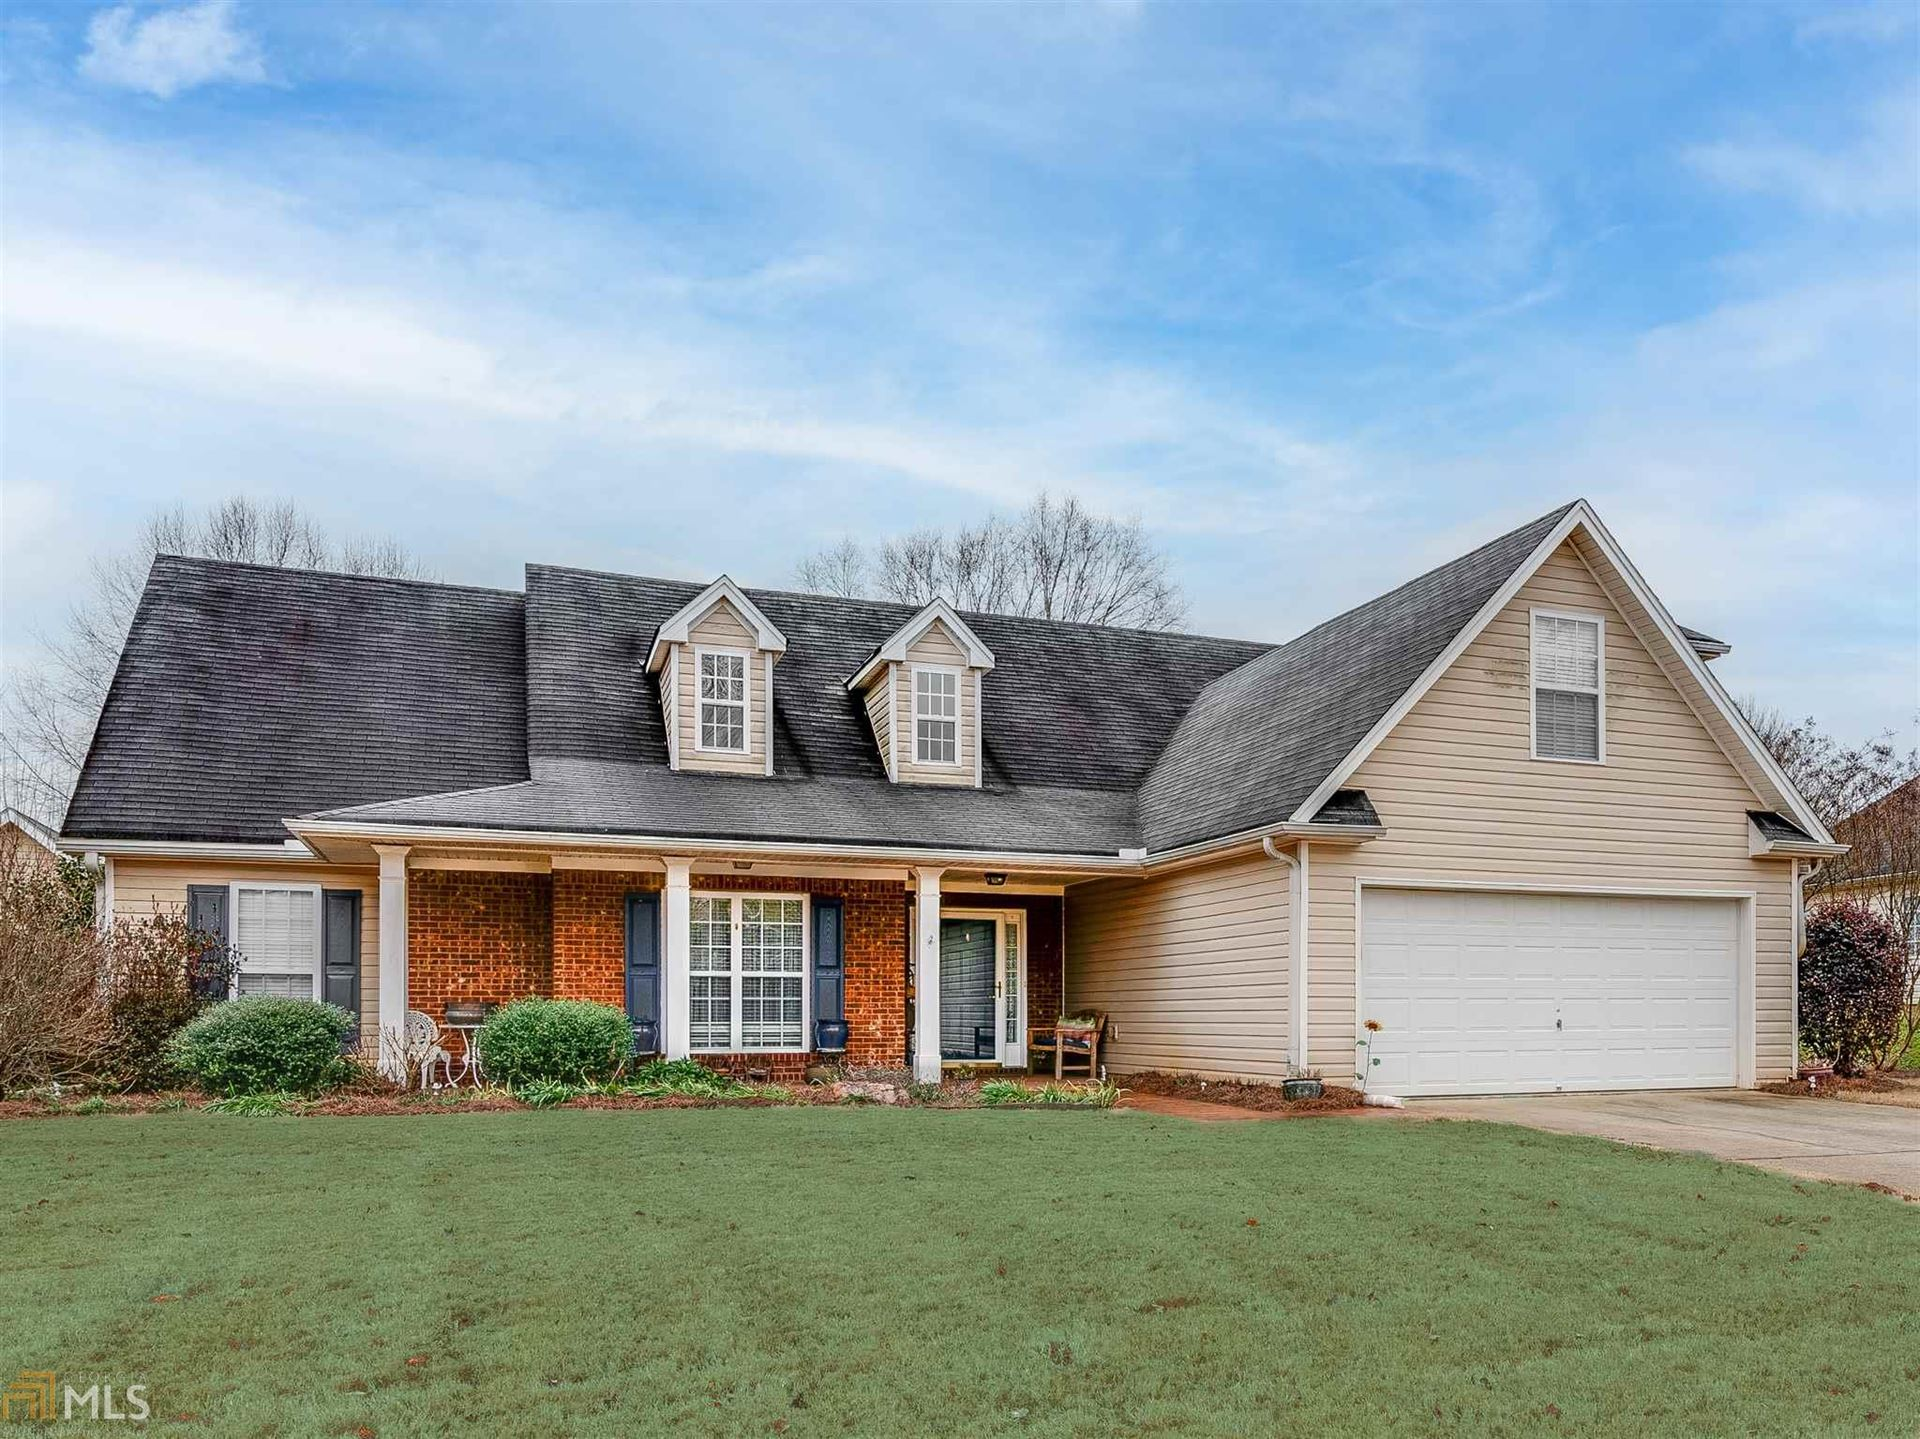 102 Rockbridge Loop, Griffin, GA 30224 - #: 8912427